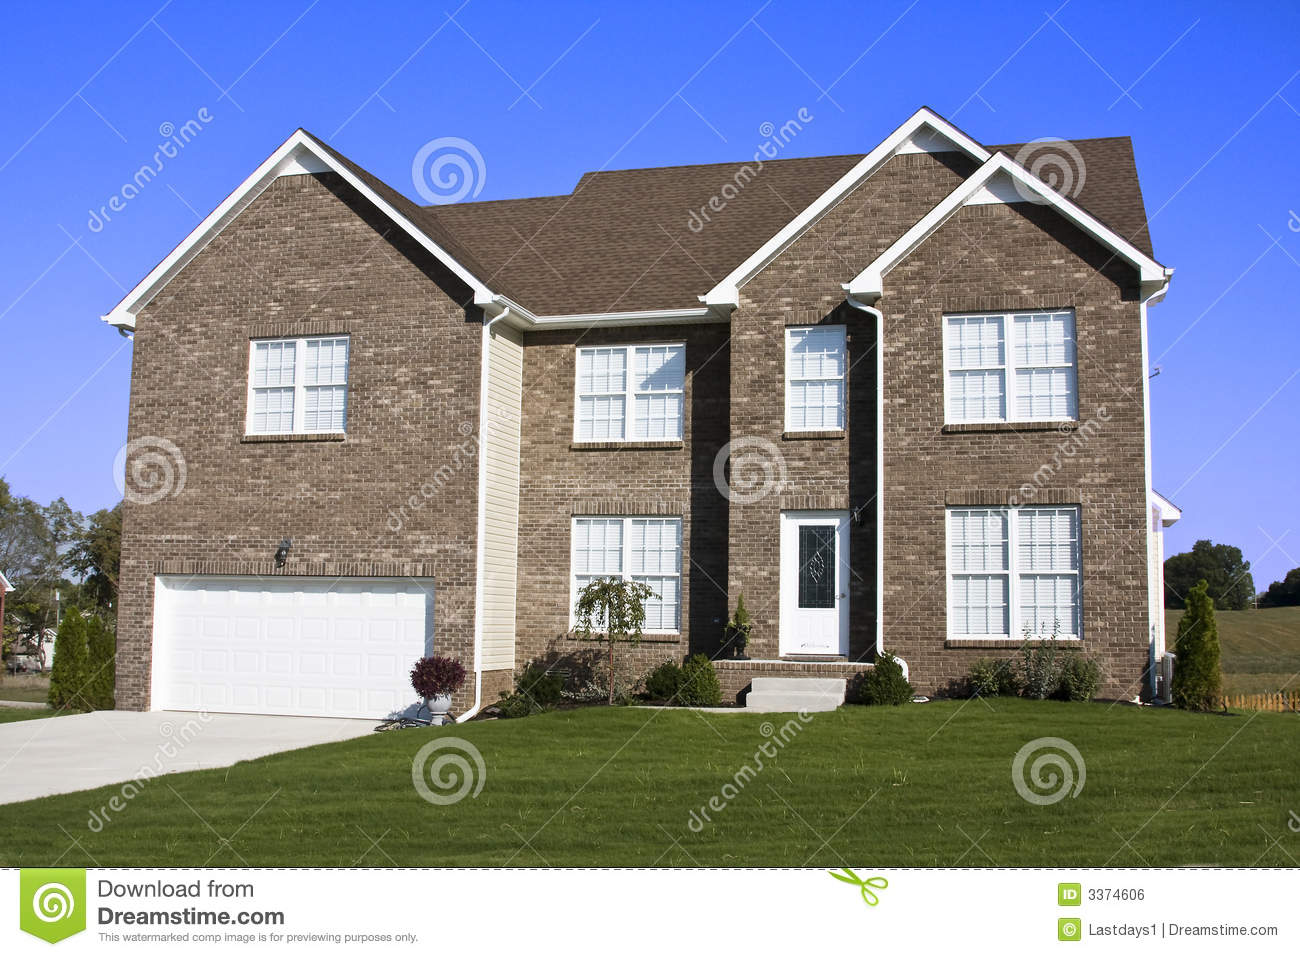 New homes for sale royalty free stock image image 3374606 for New homes for sale